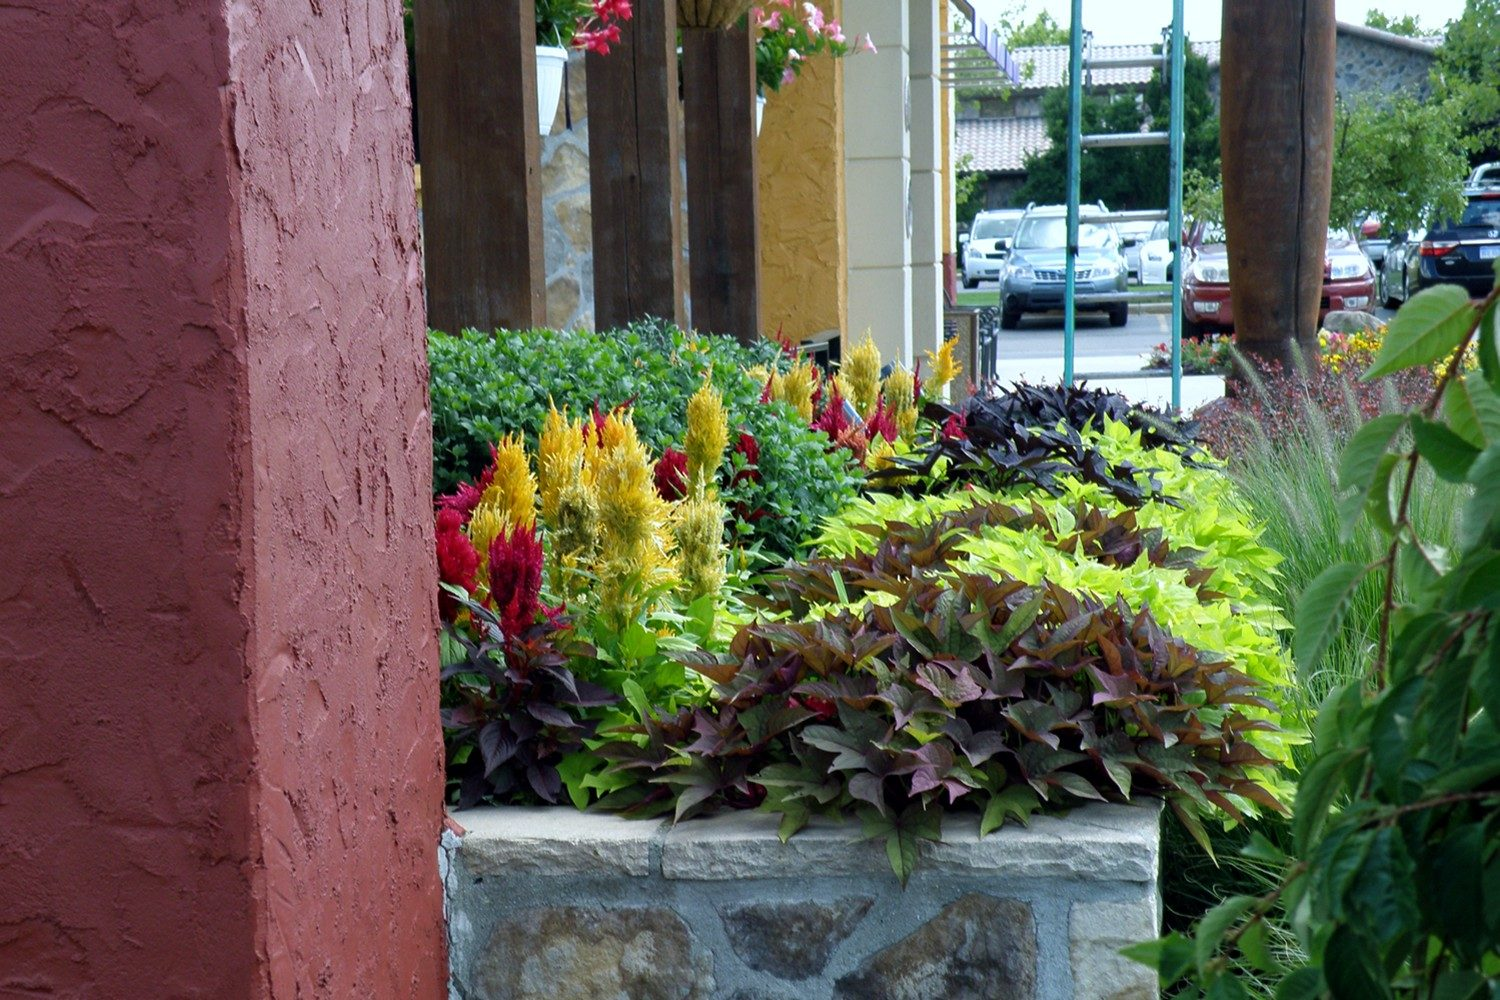 Commercial Landscaping Company Grand Rapids MI